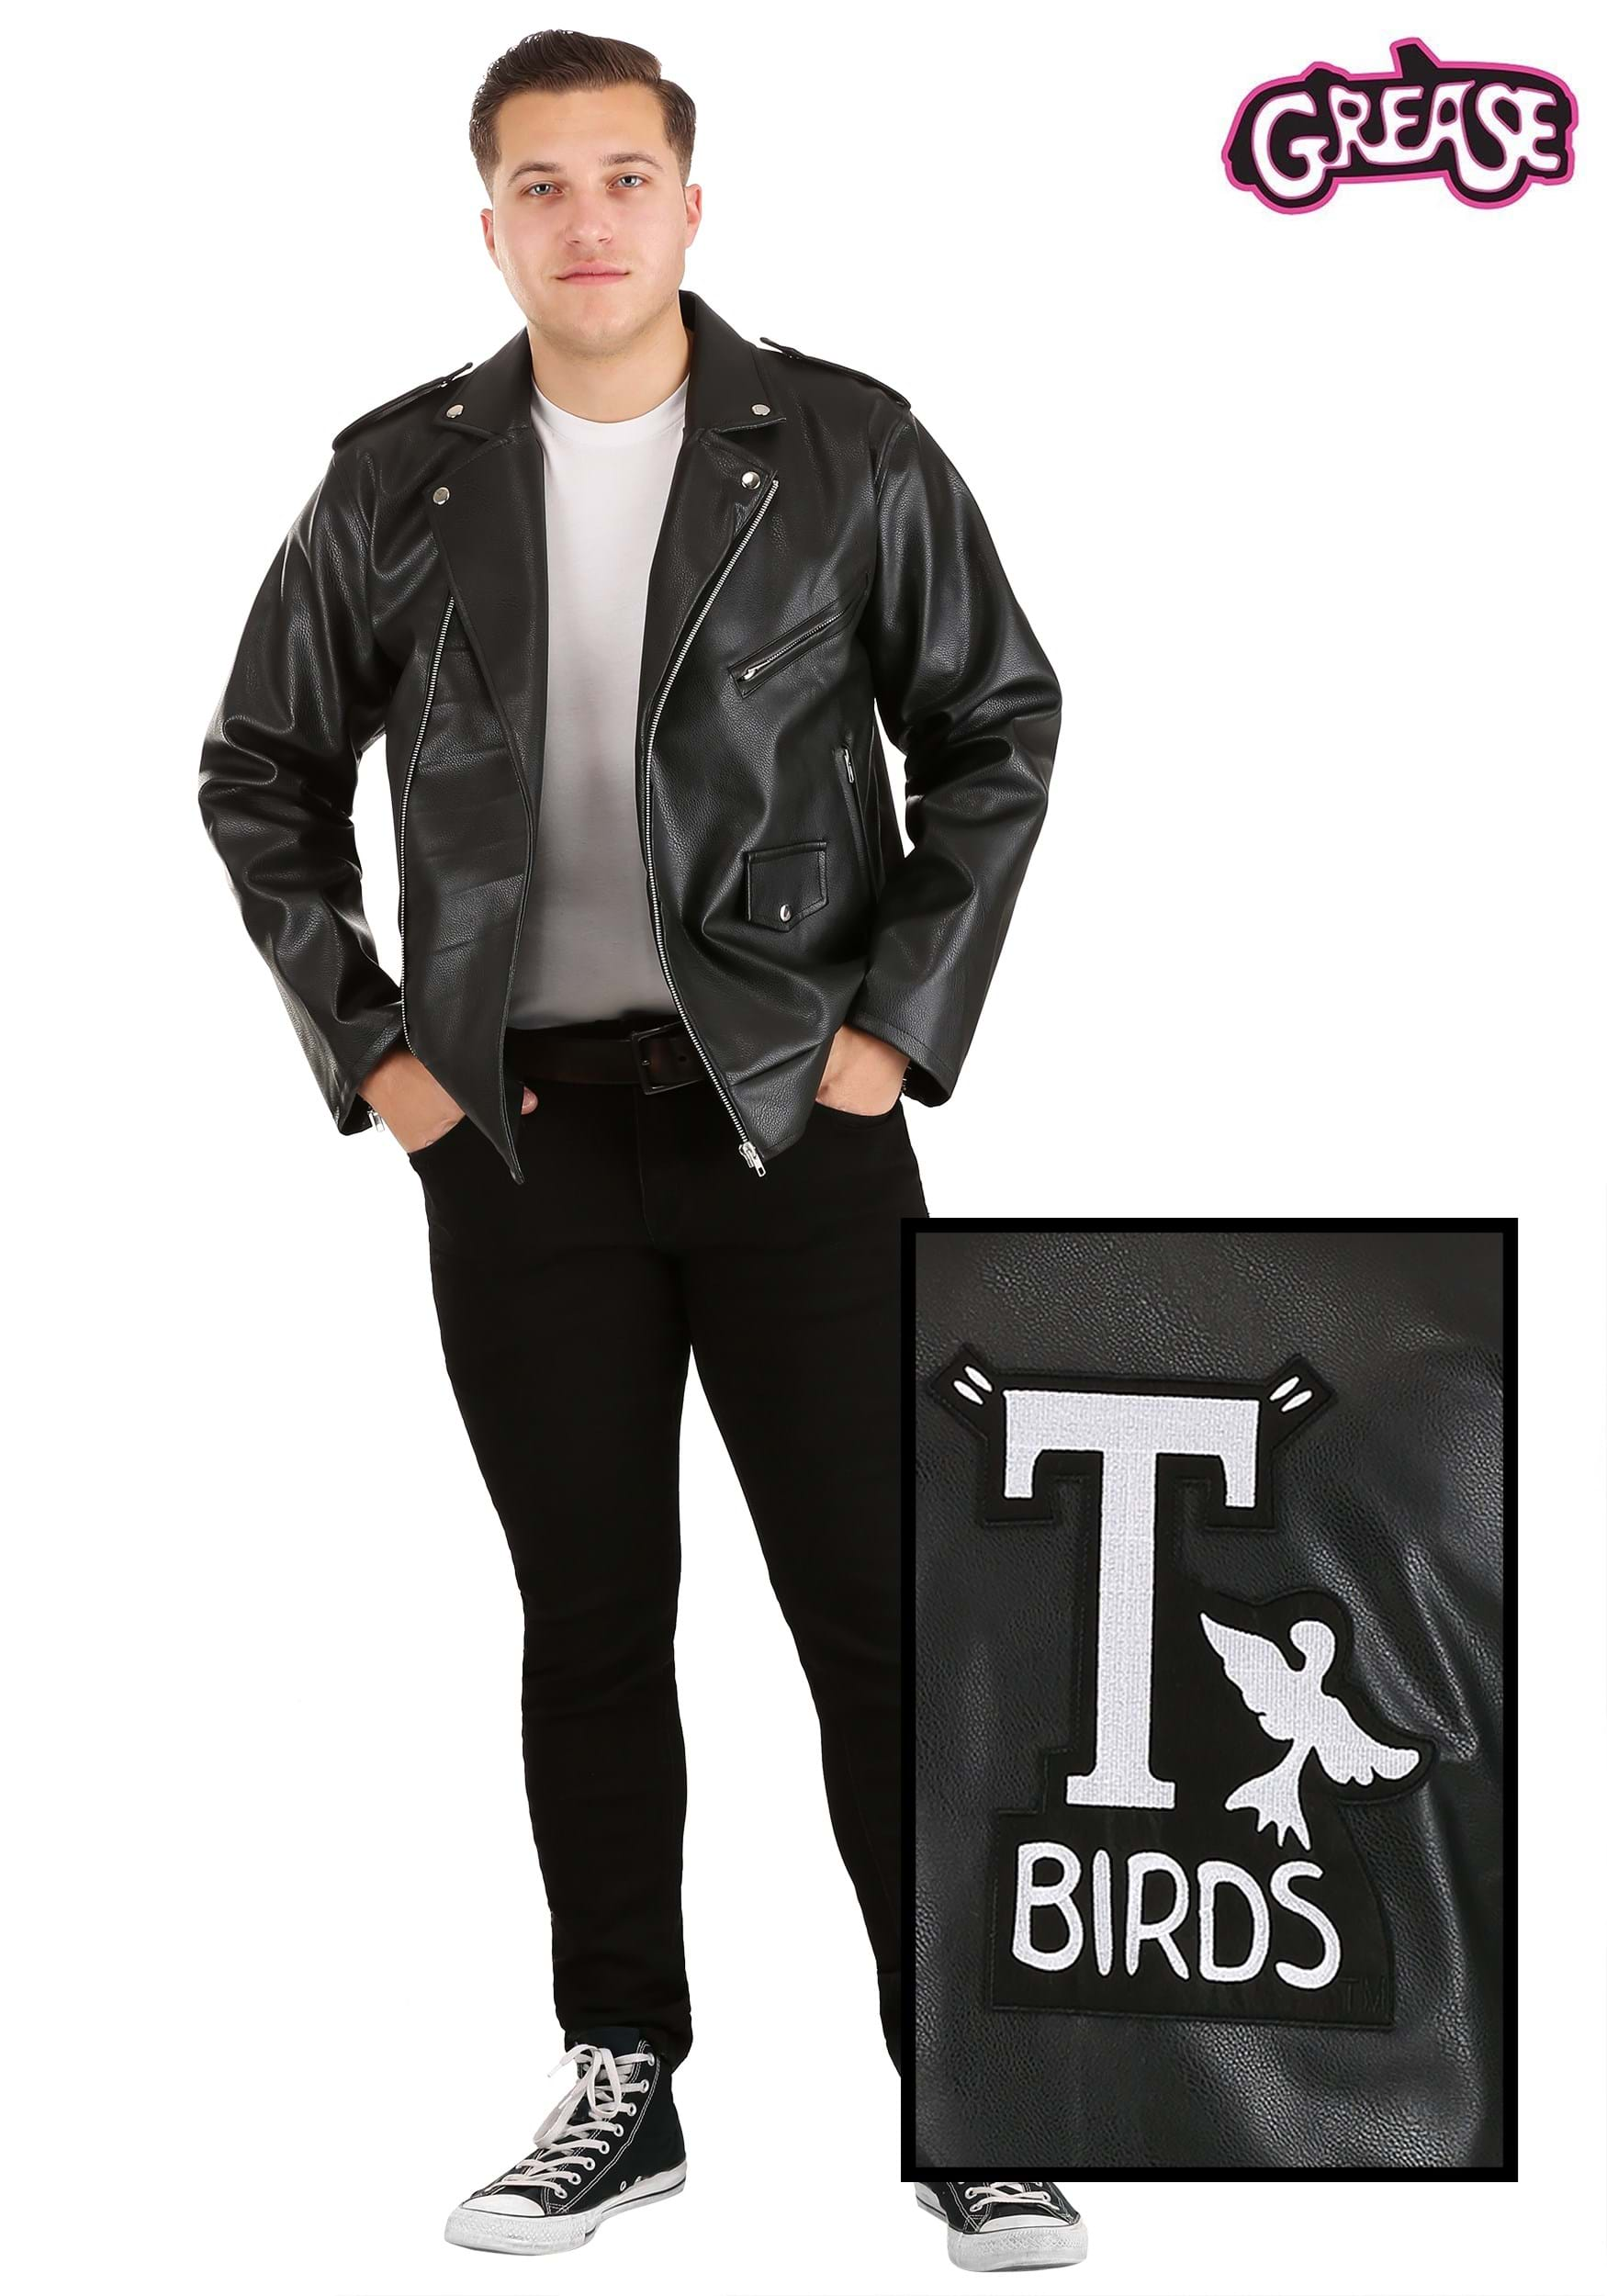 Grease Authentic T-Birds Jacket for Men